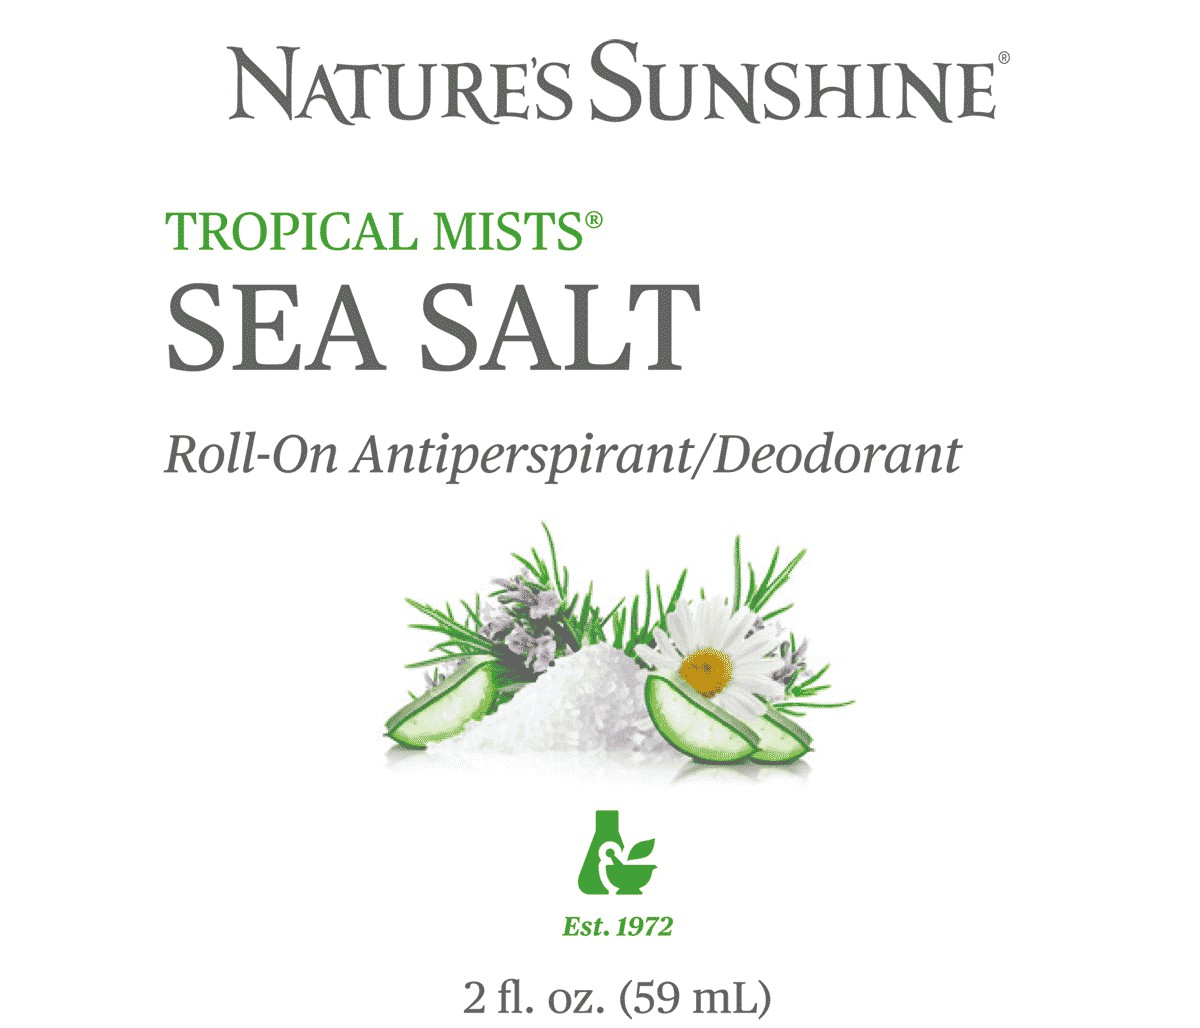 Sea Salt Roll-On Antiperspirant/Deodorant [61566] (-20%)